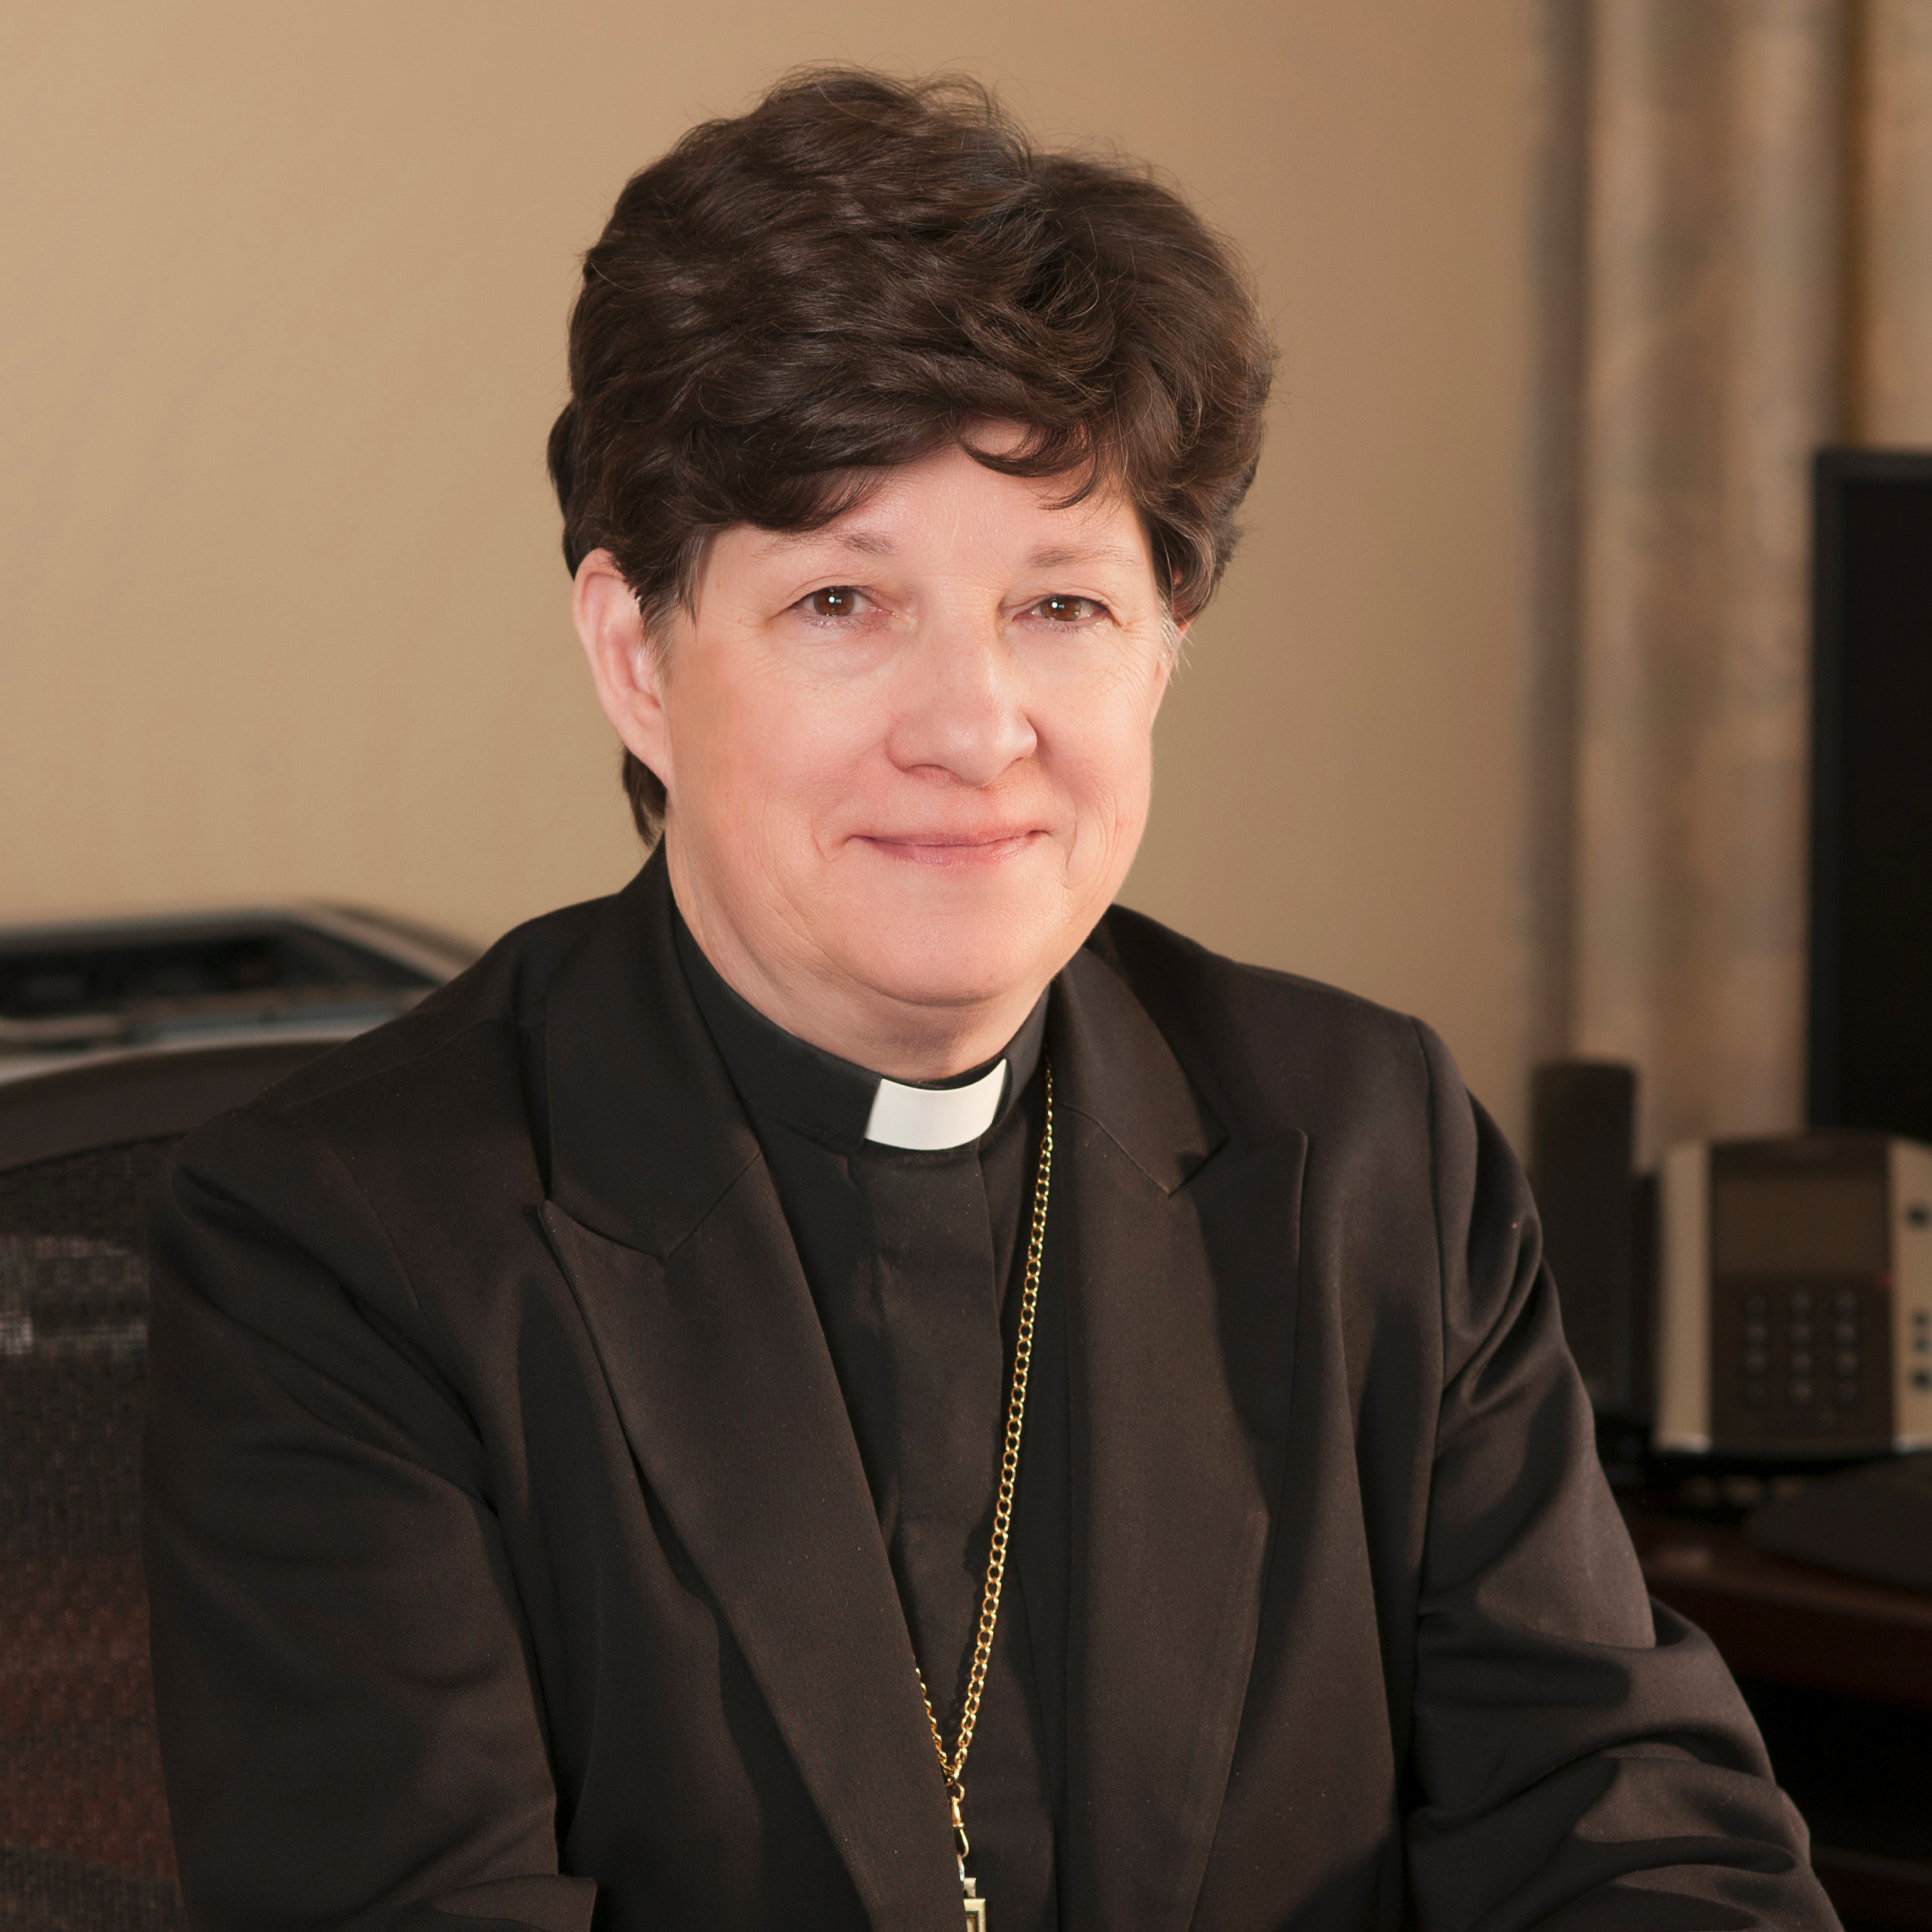 Bishop_Elizabeth_A_Eaton_Select_11.jpg